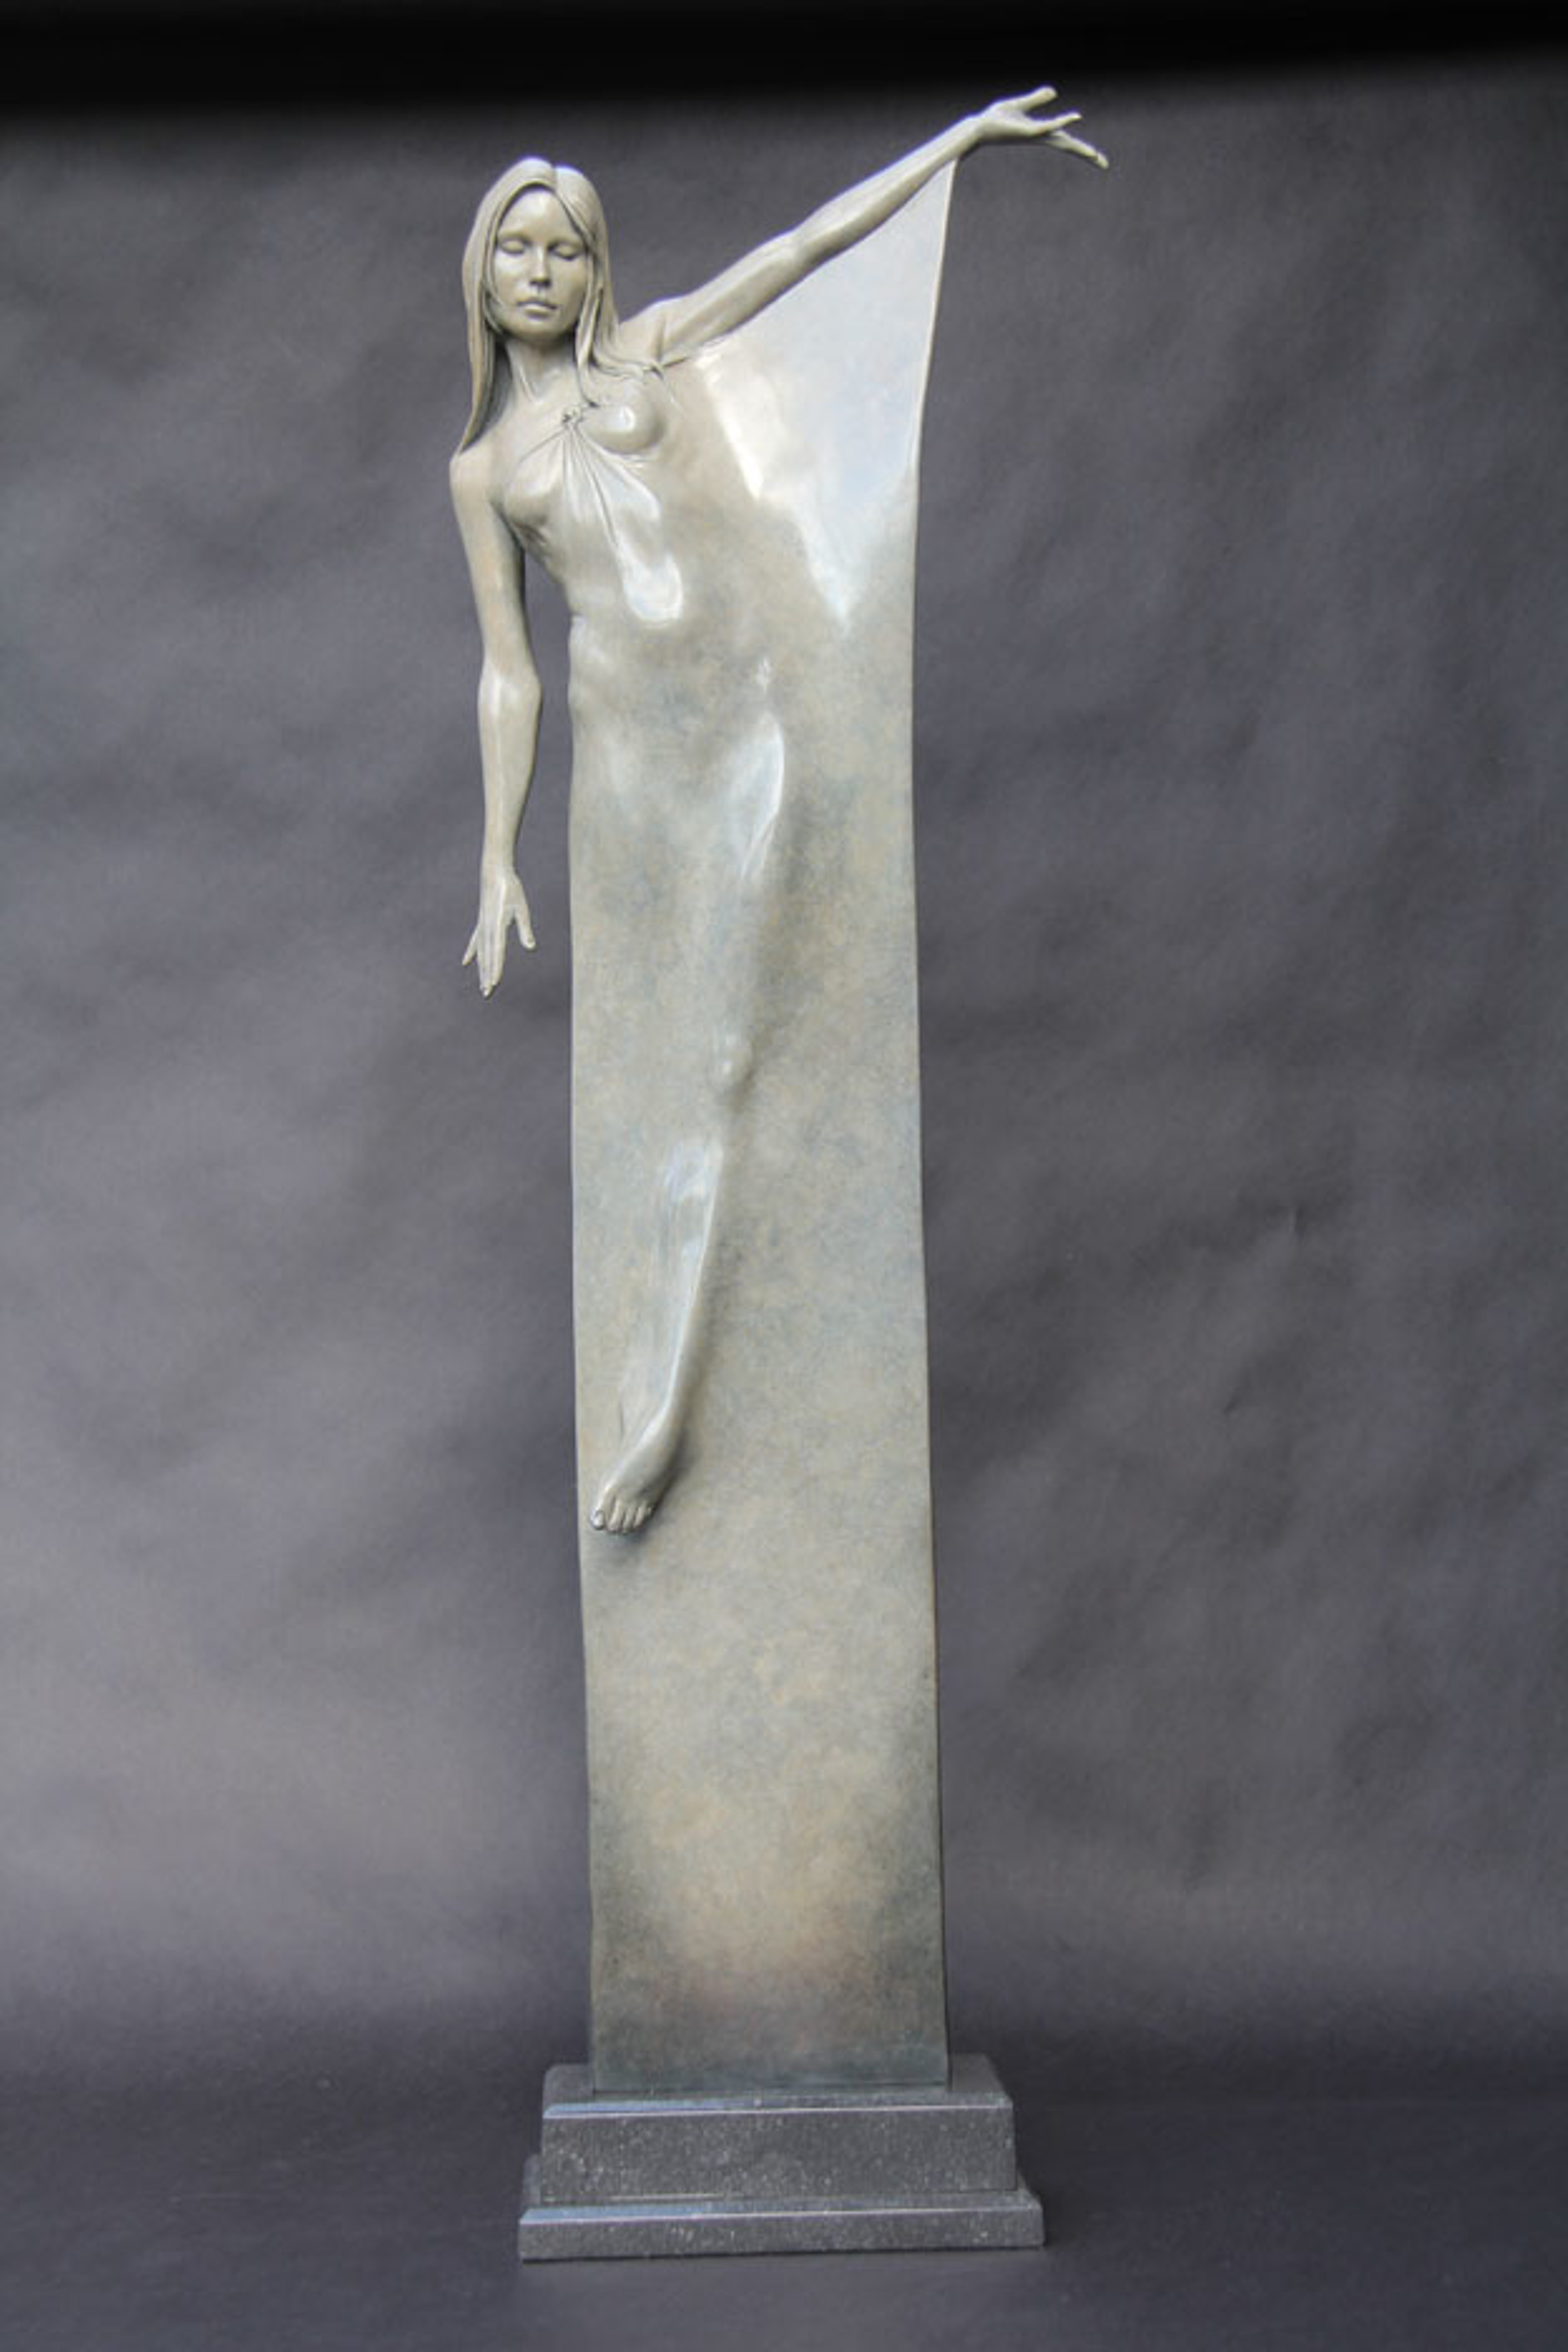 Seraphina (1/4 Life) by Michael Talbot